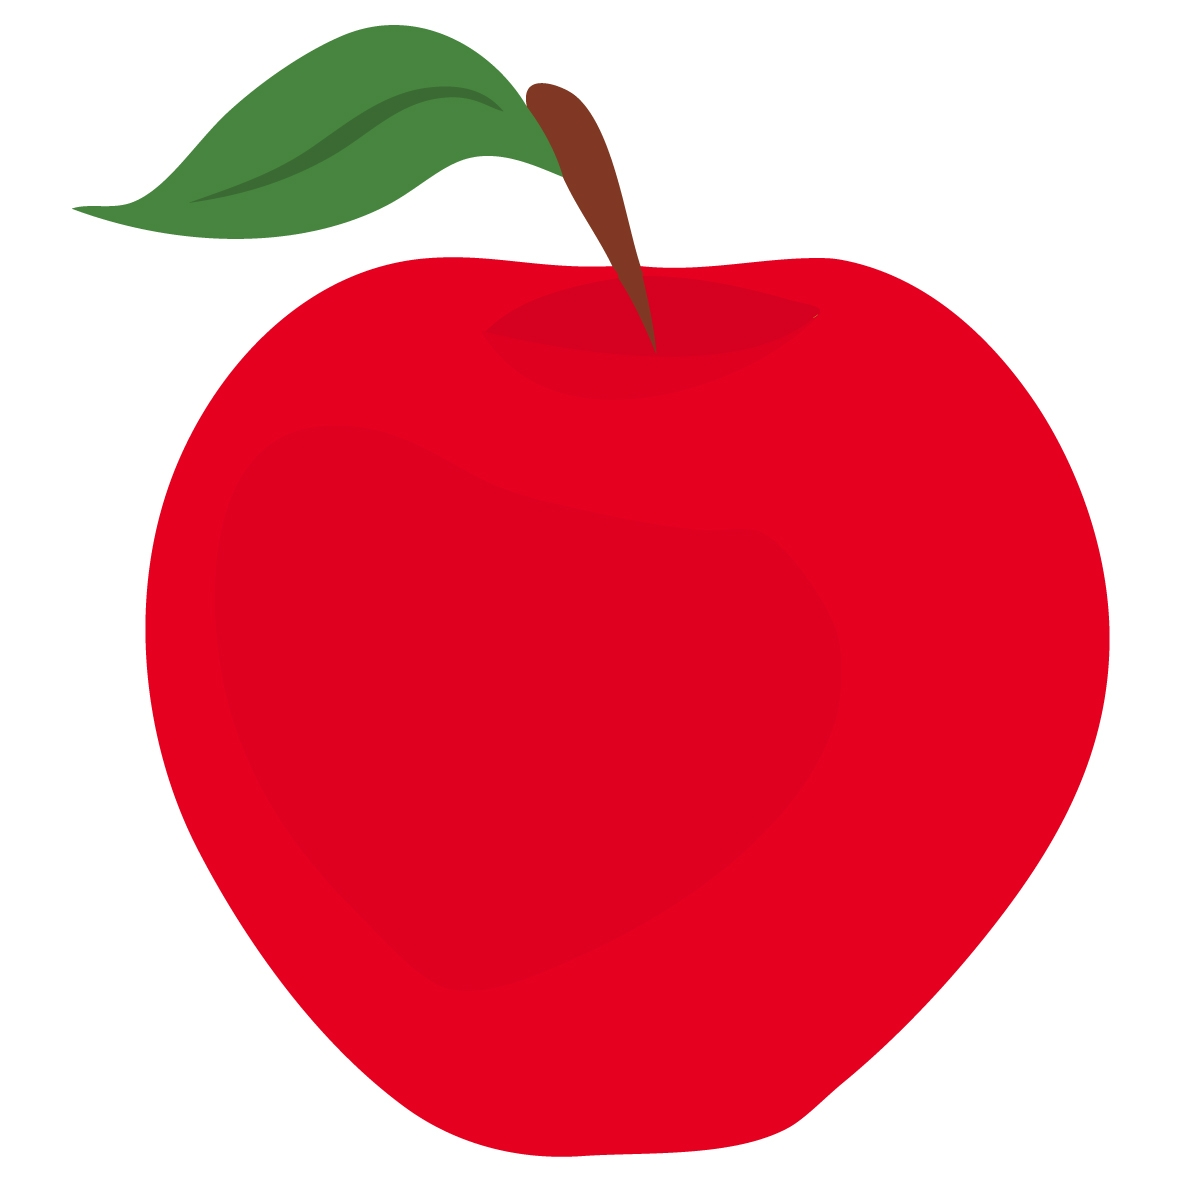 Apple no stem clipart image black and white Free No Apple Cliparts, Download Free Clip Art, Free Clip Art on ... image black and white